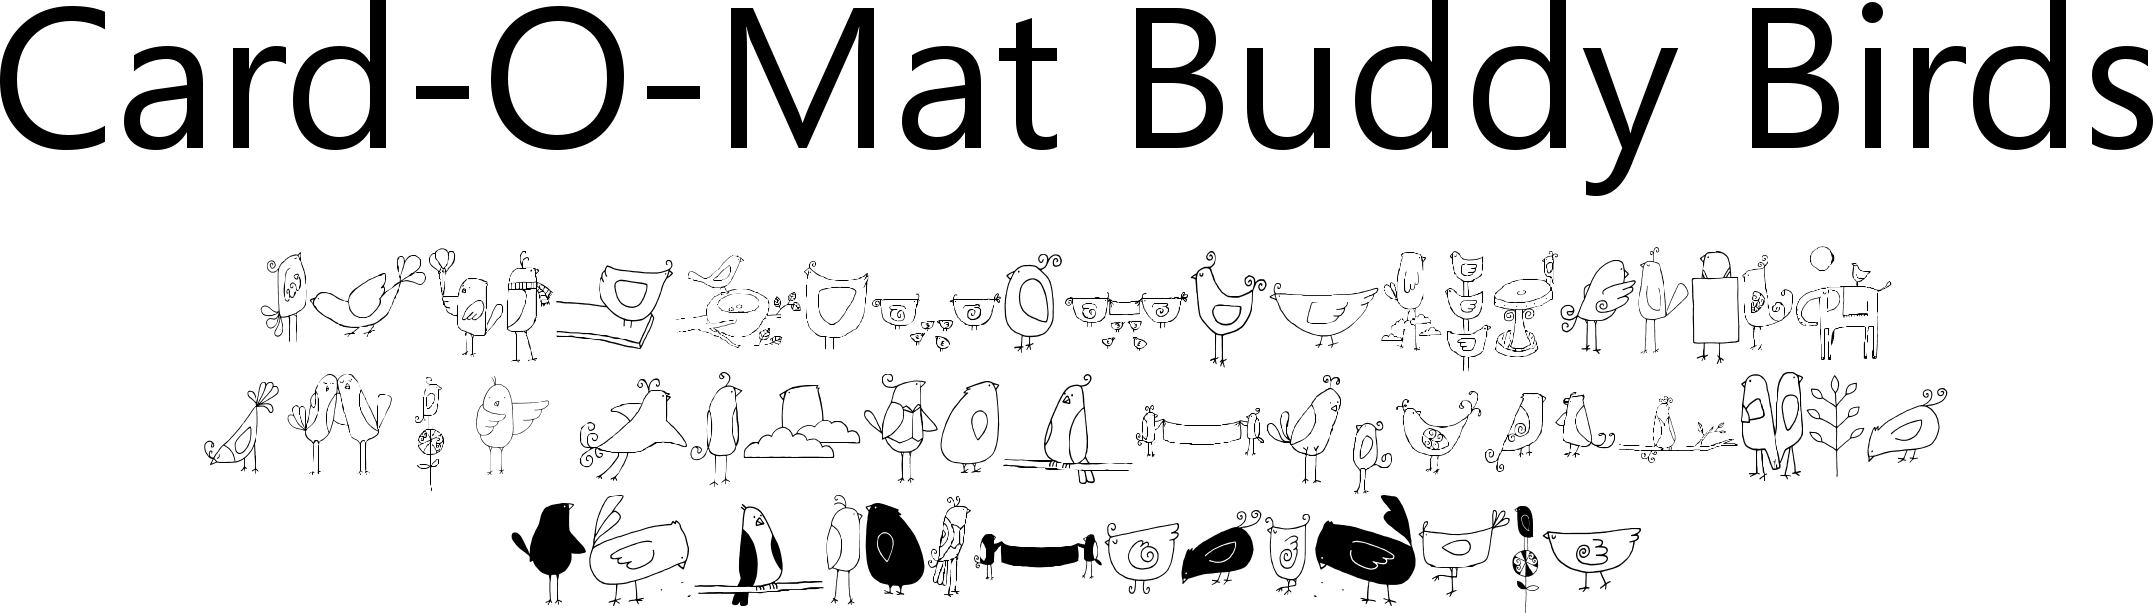 Card-O-Mat Buddy Birds